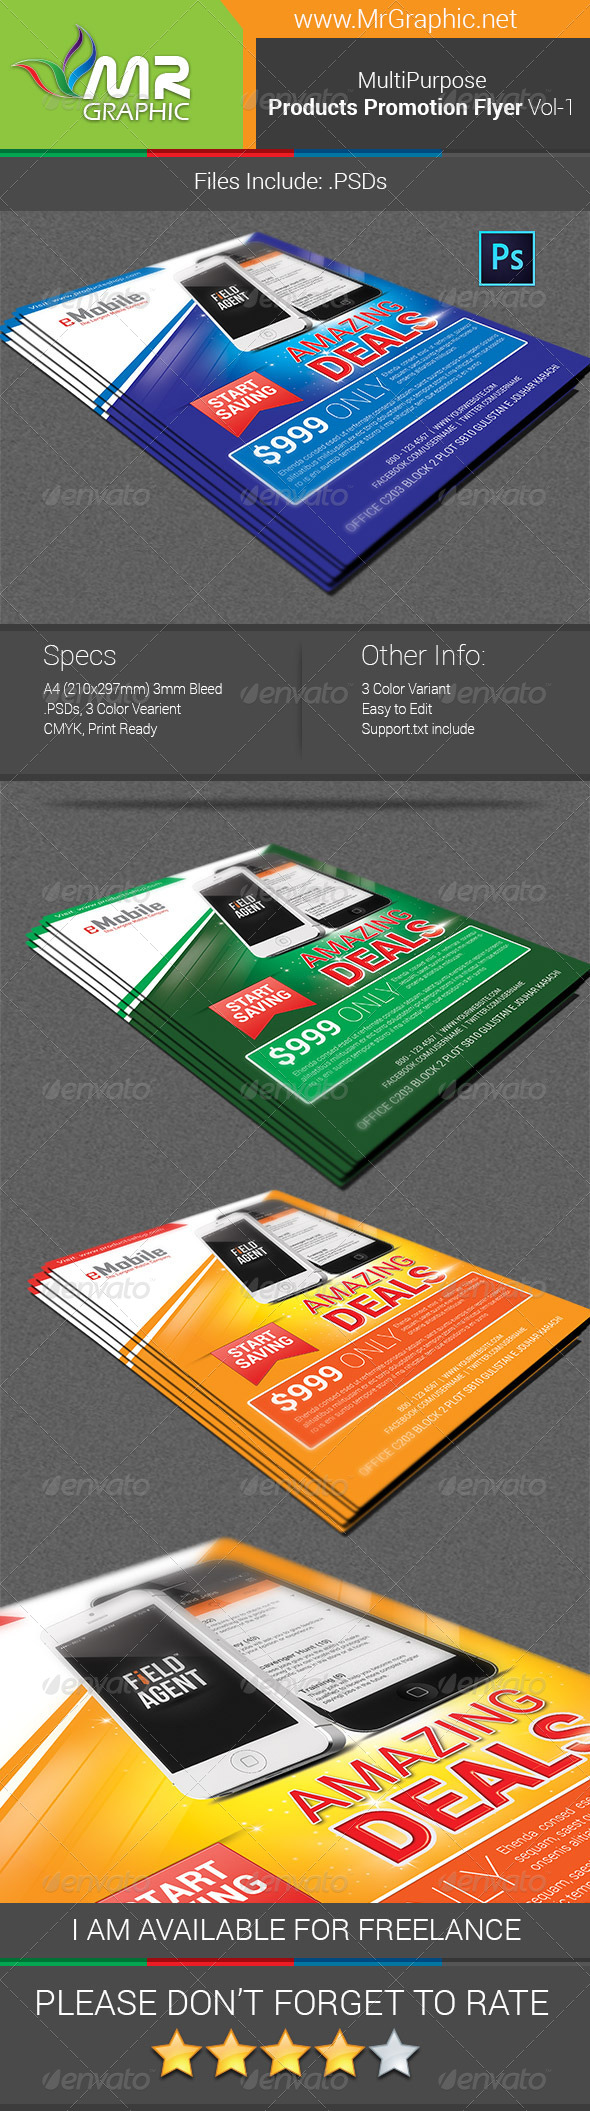 GraphicRiver Products Promotion Flyer Vol-01 6160638